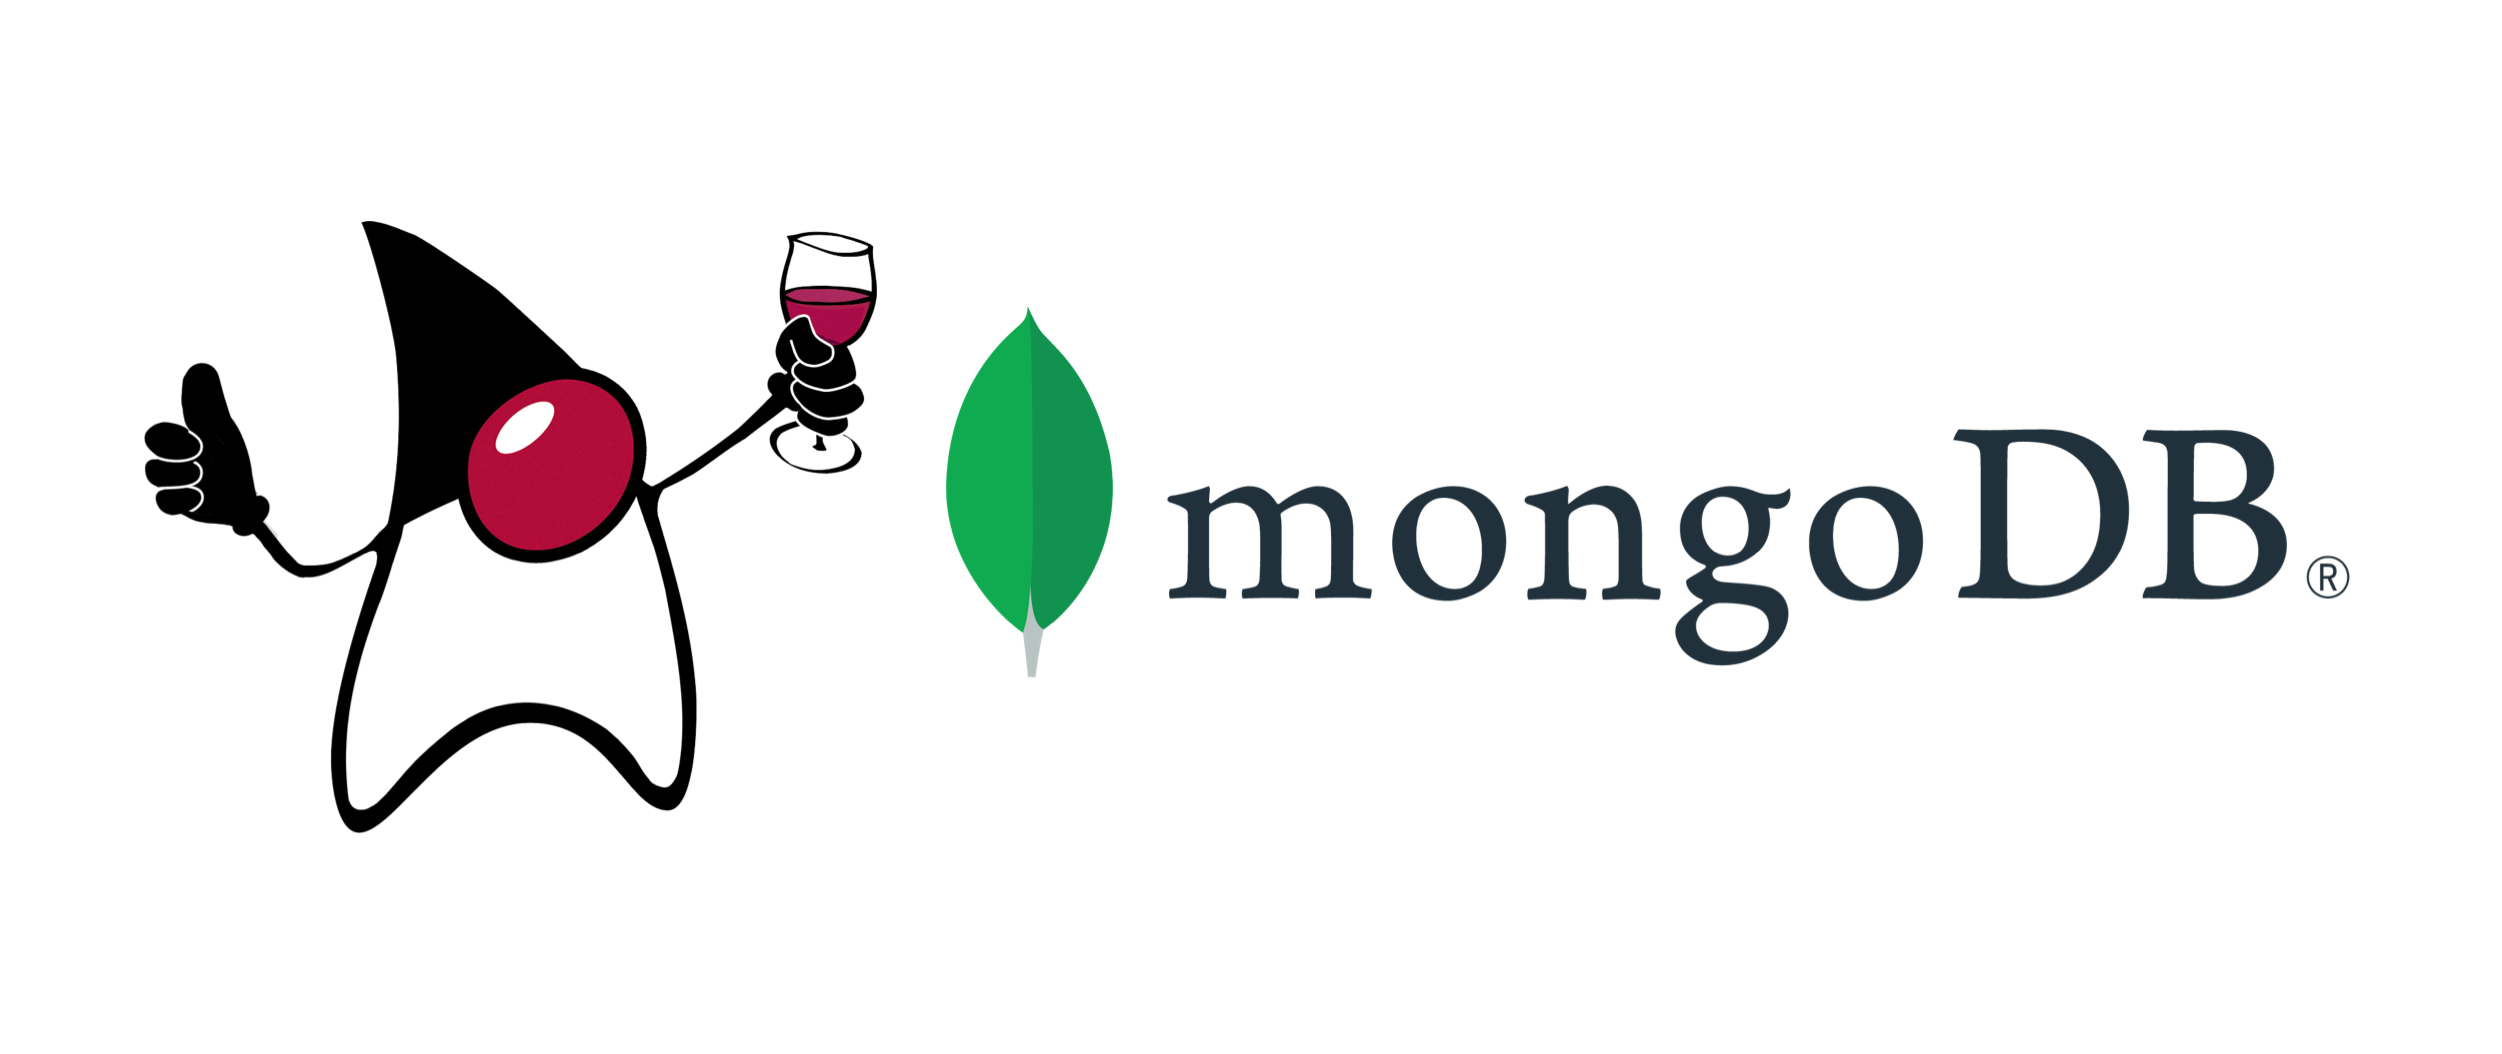 Duke raises a glass to MongoDB